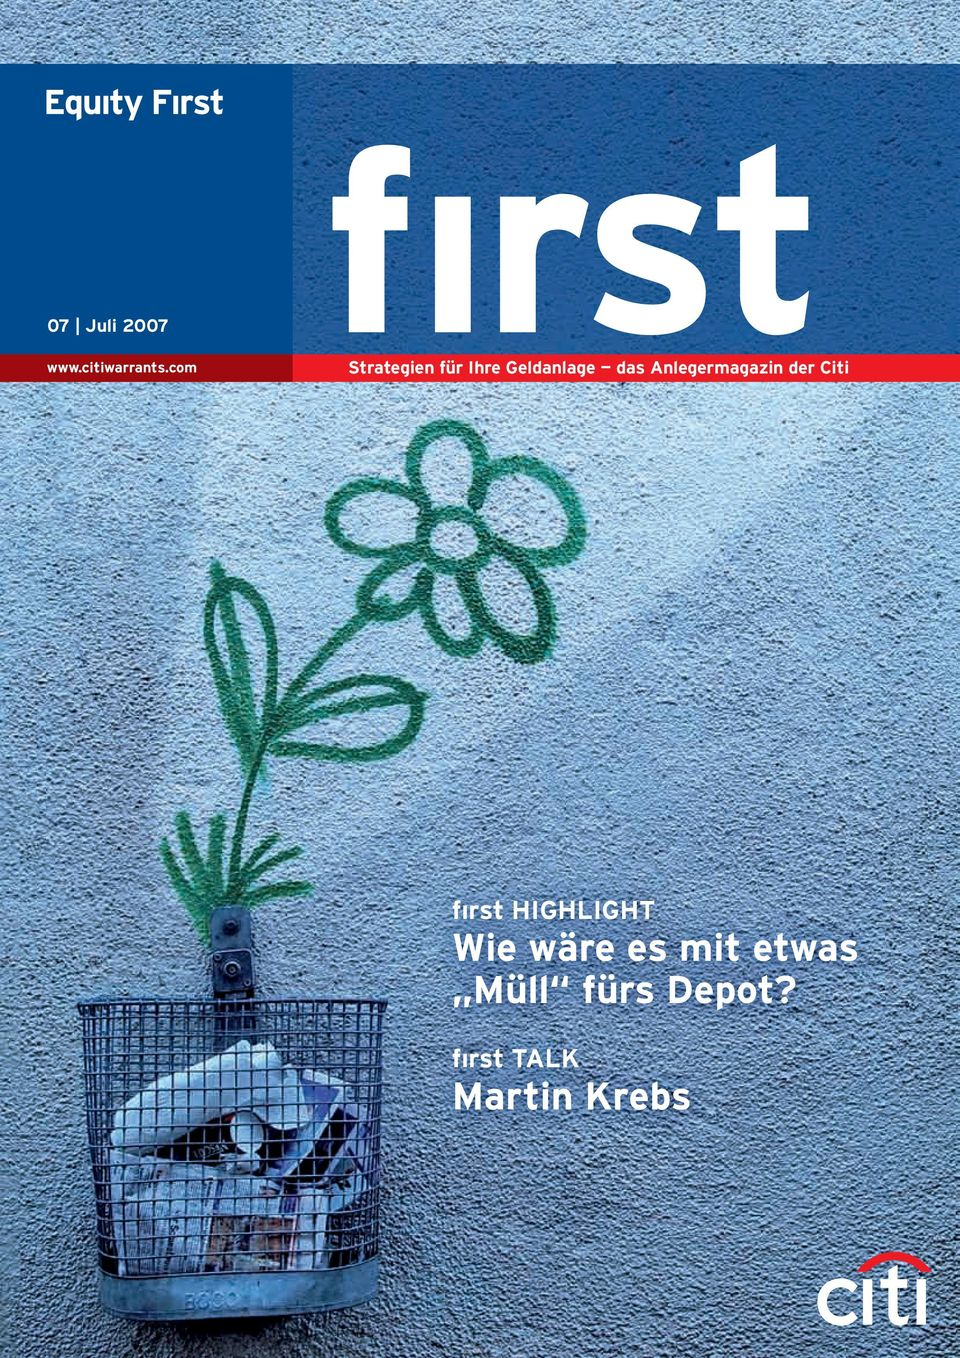 Anlegermagazin der Citi fırst HIGHLIGHT